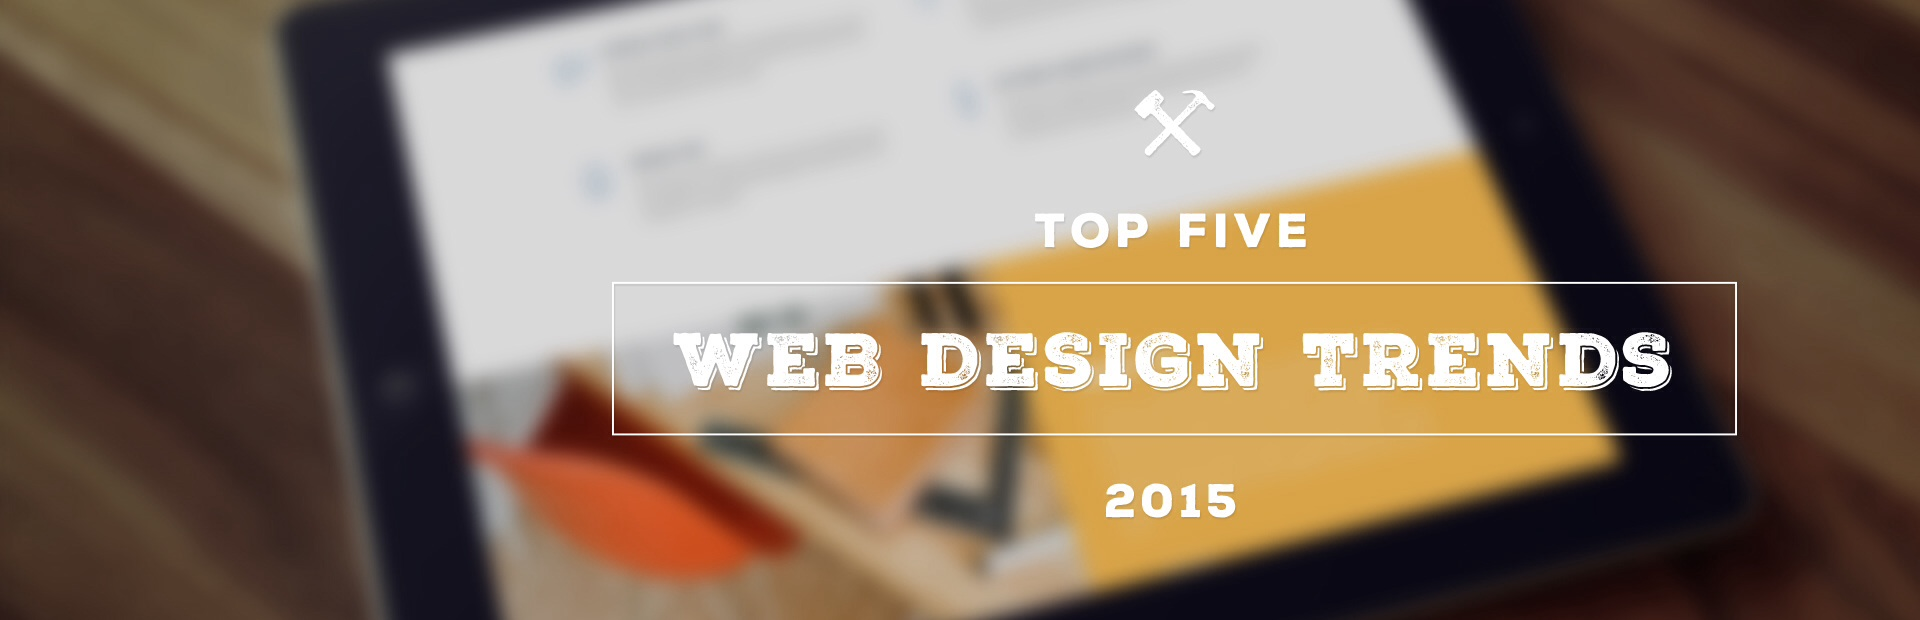 5 Web Design Trends That Will Rule in 2015